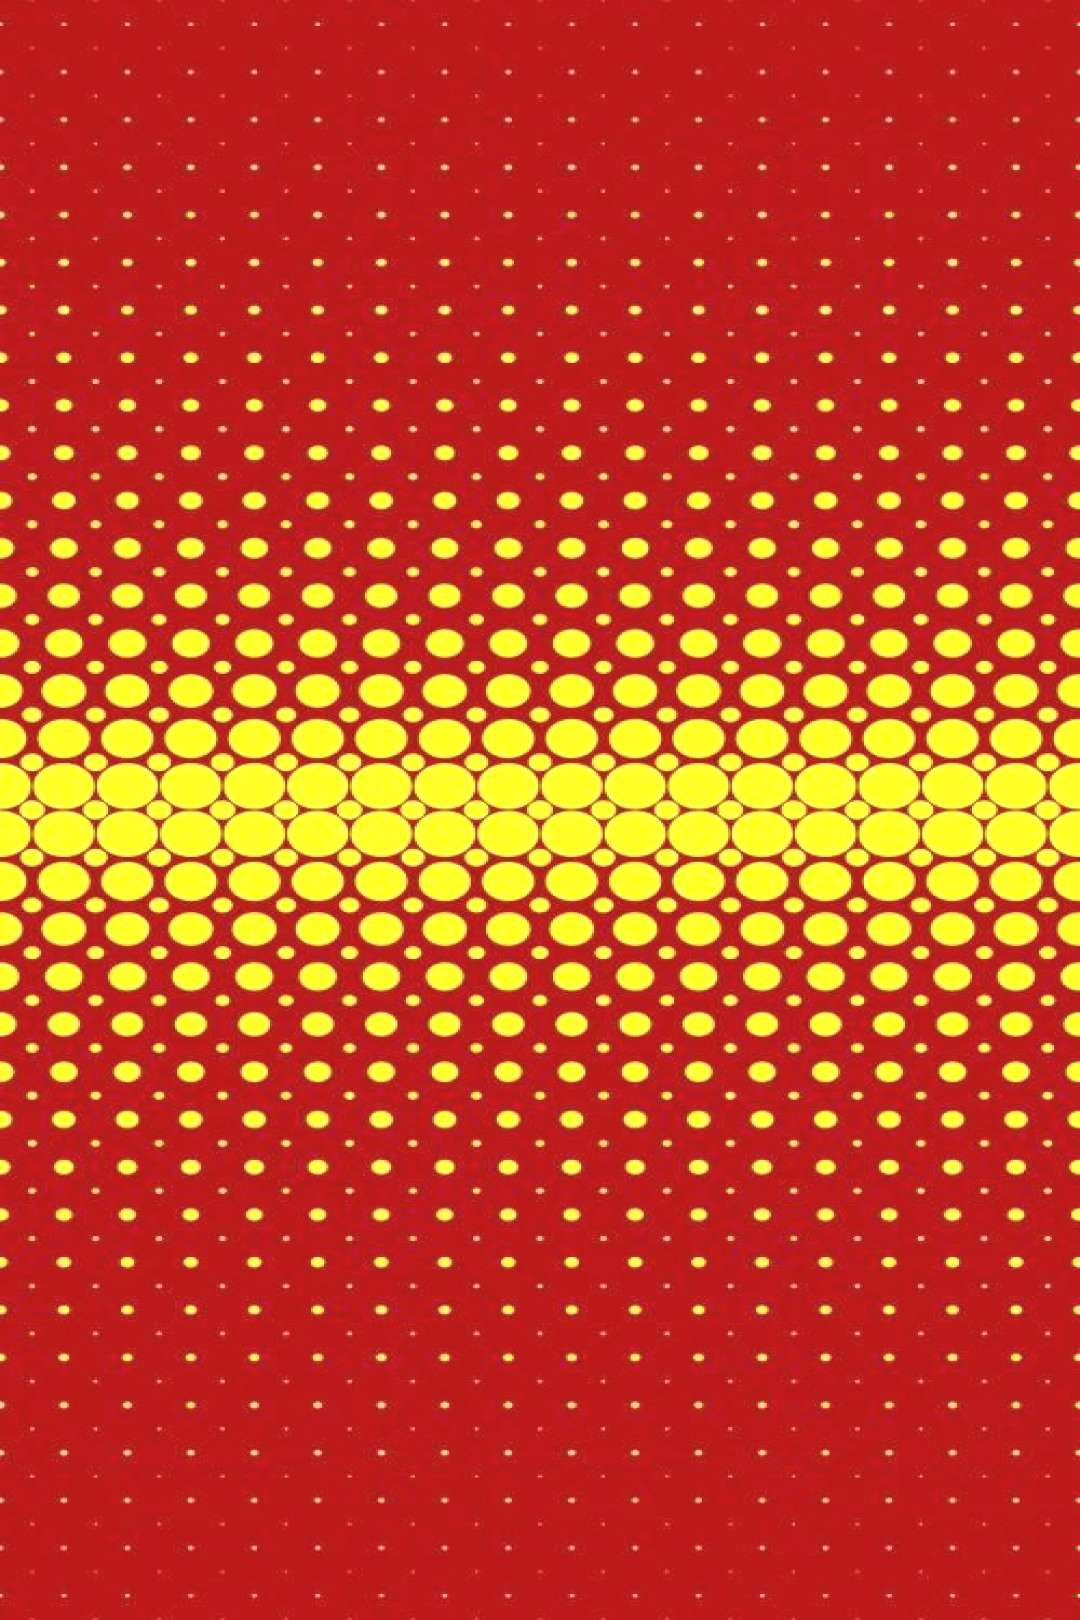 Abstract geometrical halftone dot pattern background - vector graphic from yellow circles on maroon